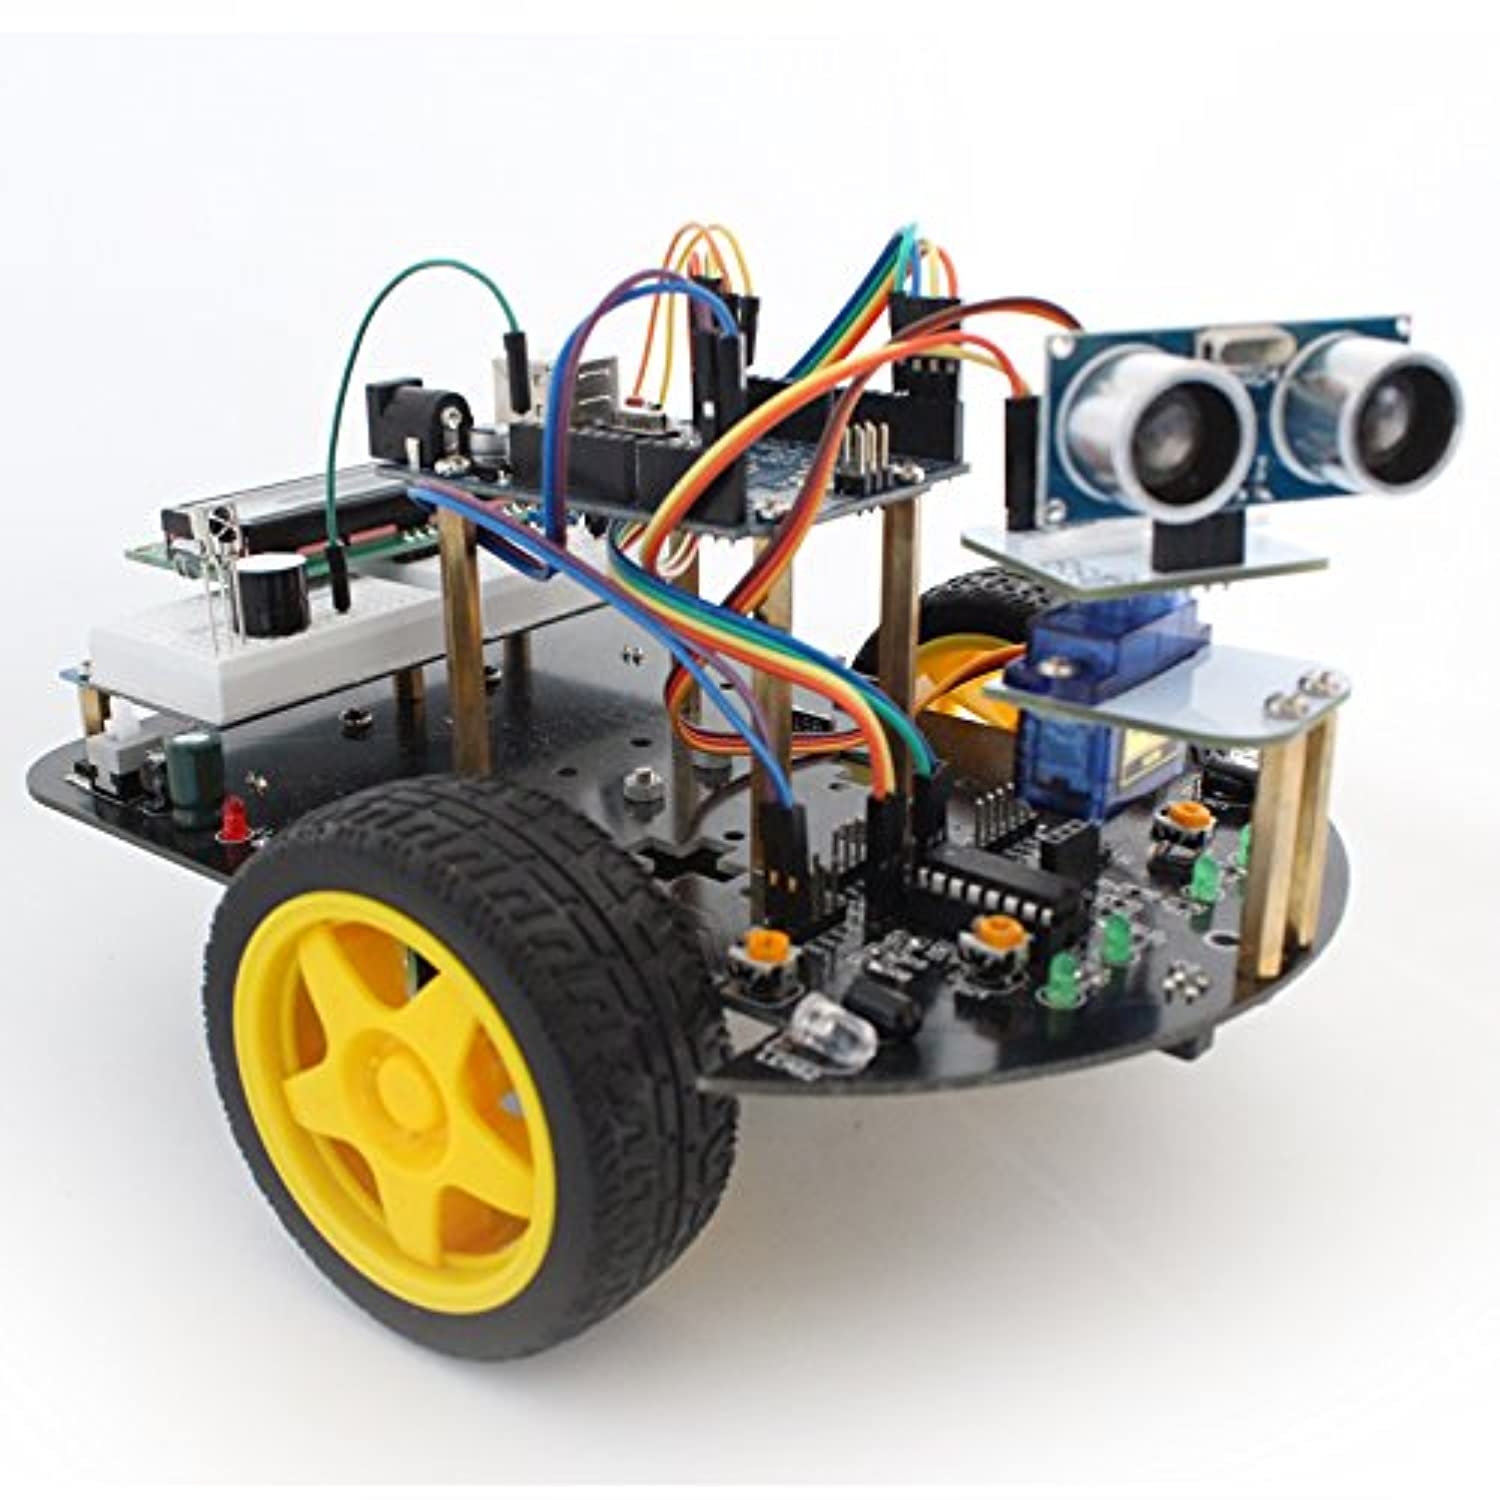 Kuman Upgraded SM2 Pro Robot Car Kit for Arduino, 2 Wheel Utility